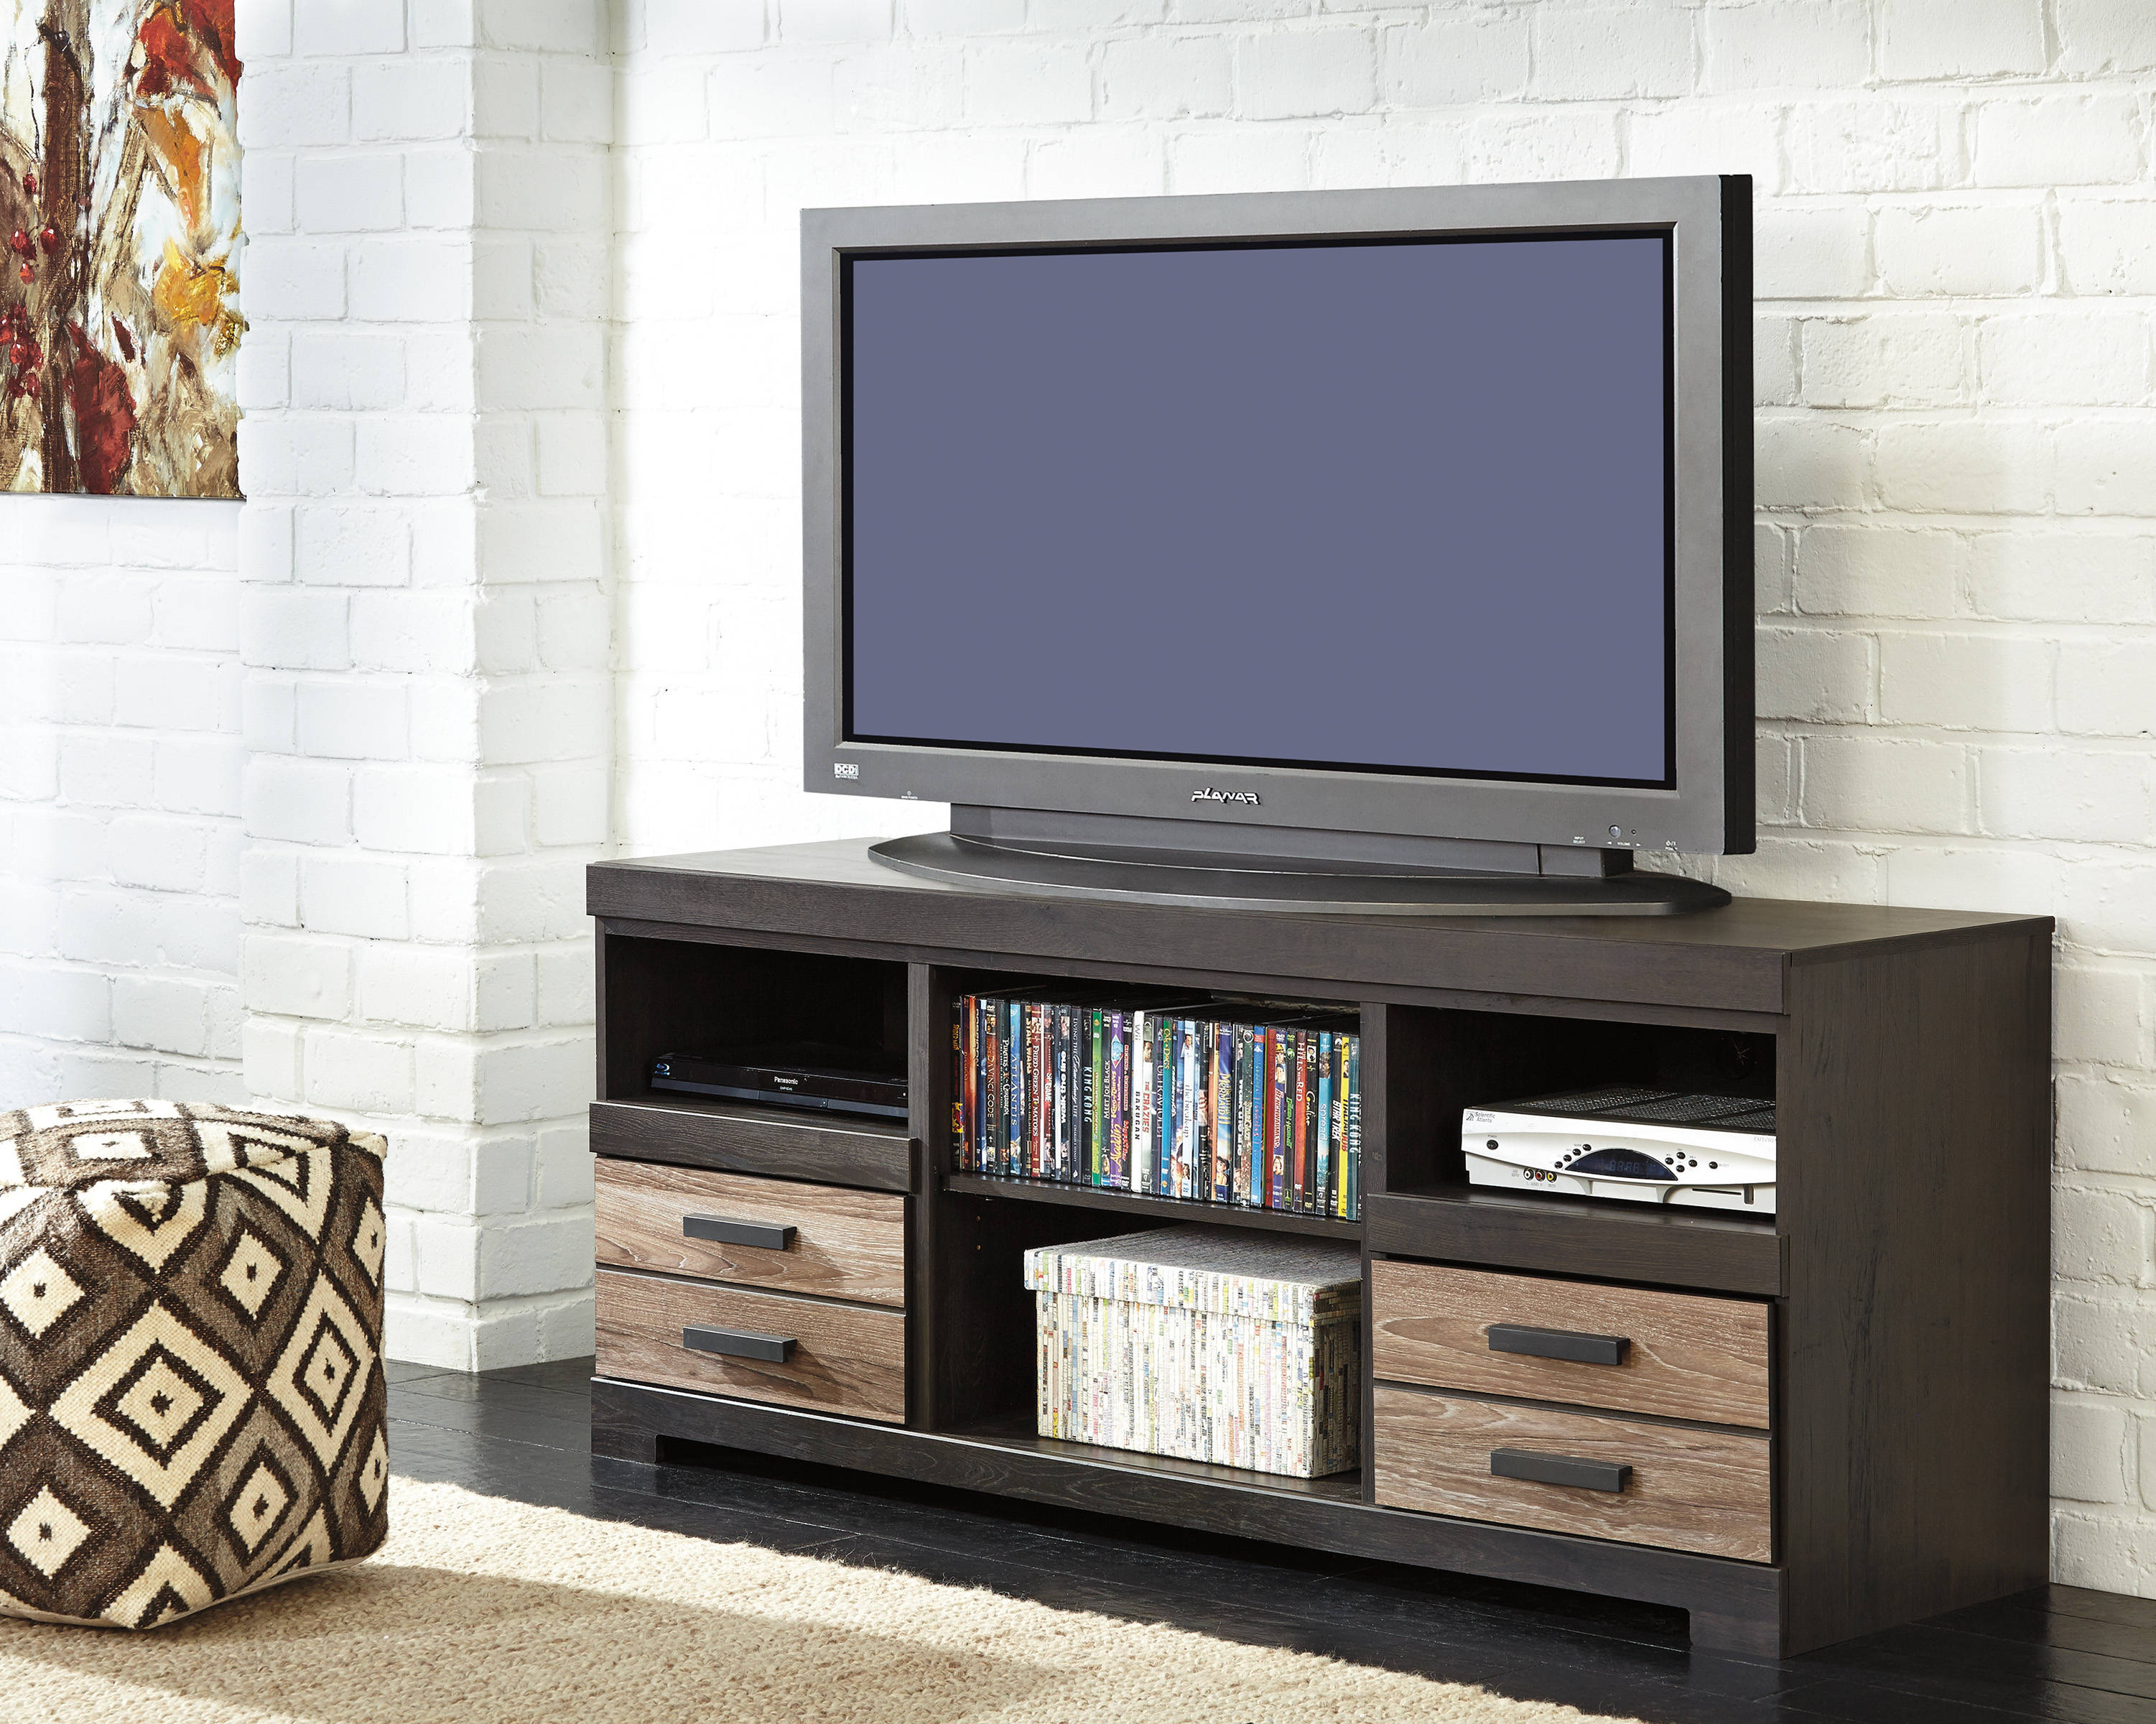 Ashley Furniture Harlinton Wood Lg Tv Stand With Fireplace The